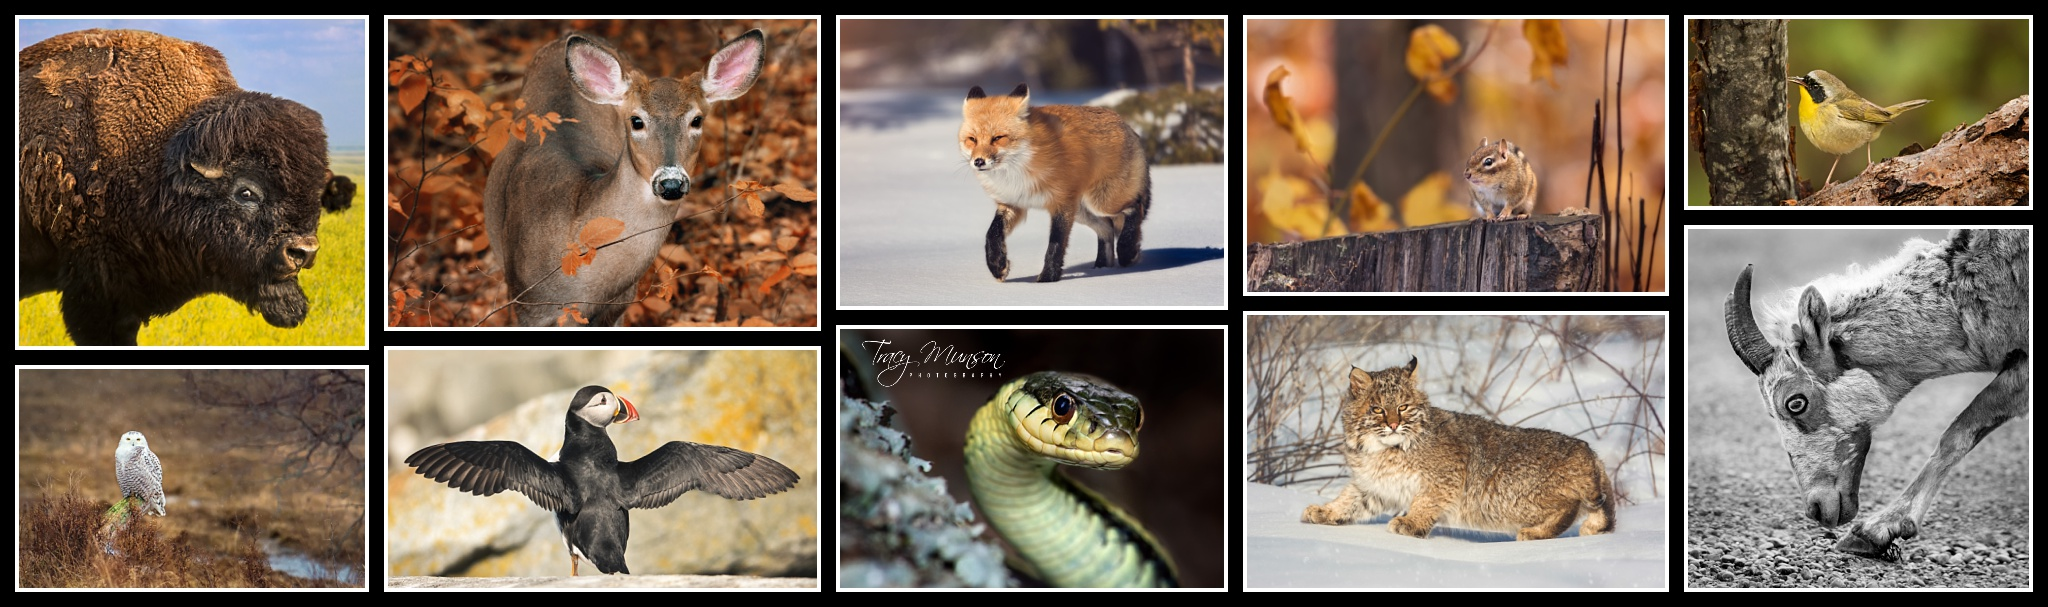 Wildlife Photography 2019 - The 10 Accepted images in my Wildlife Accreditation.